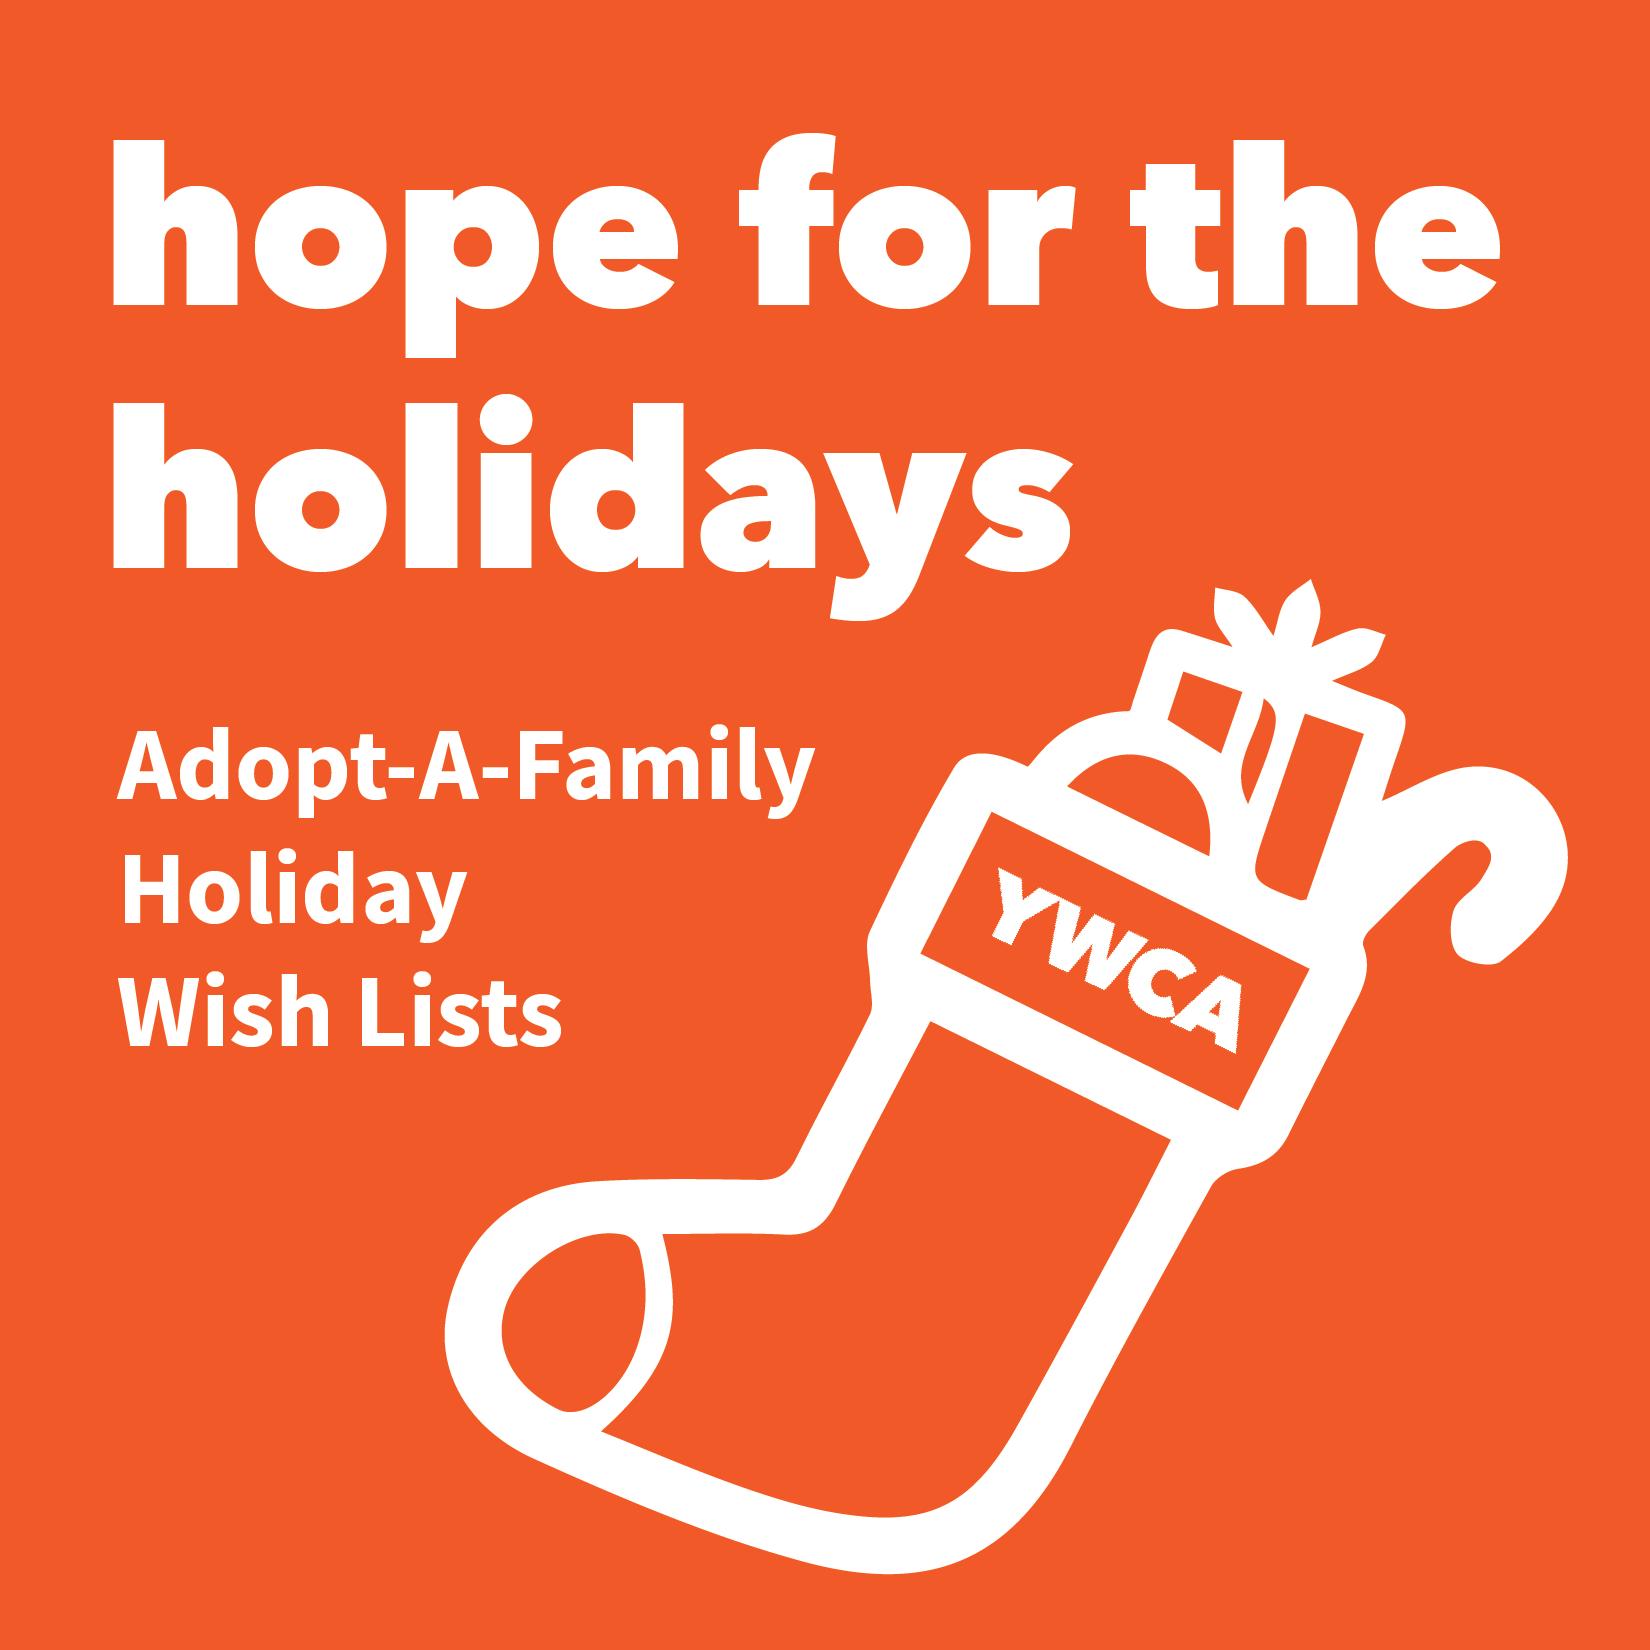 YWCA Adopt-a-Family Holiday Wish List Program